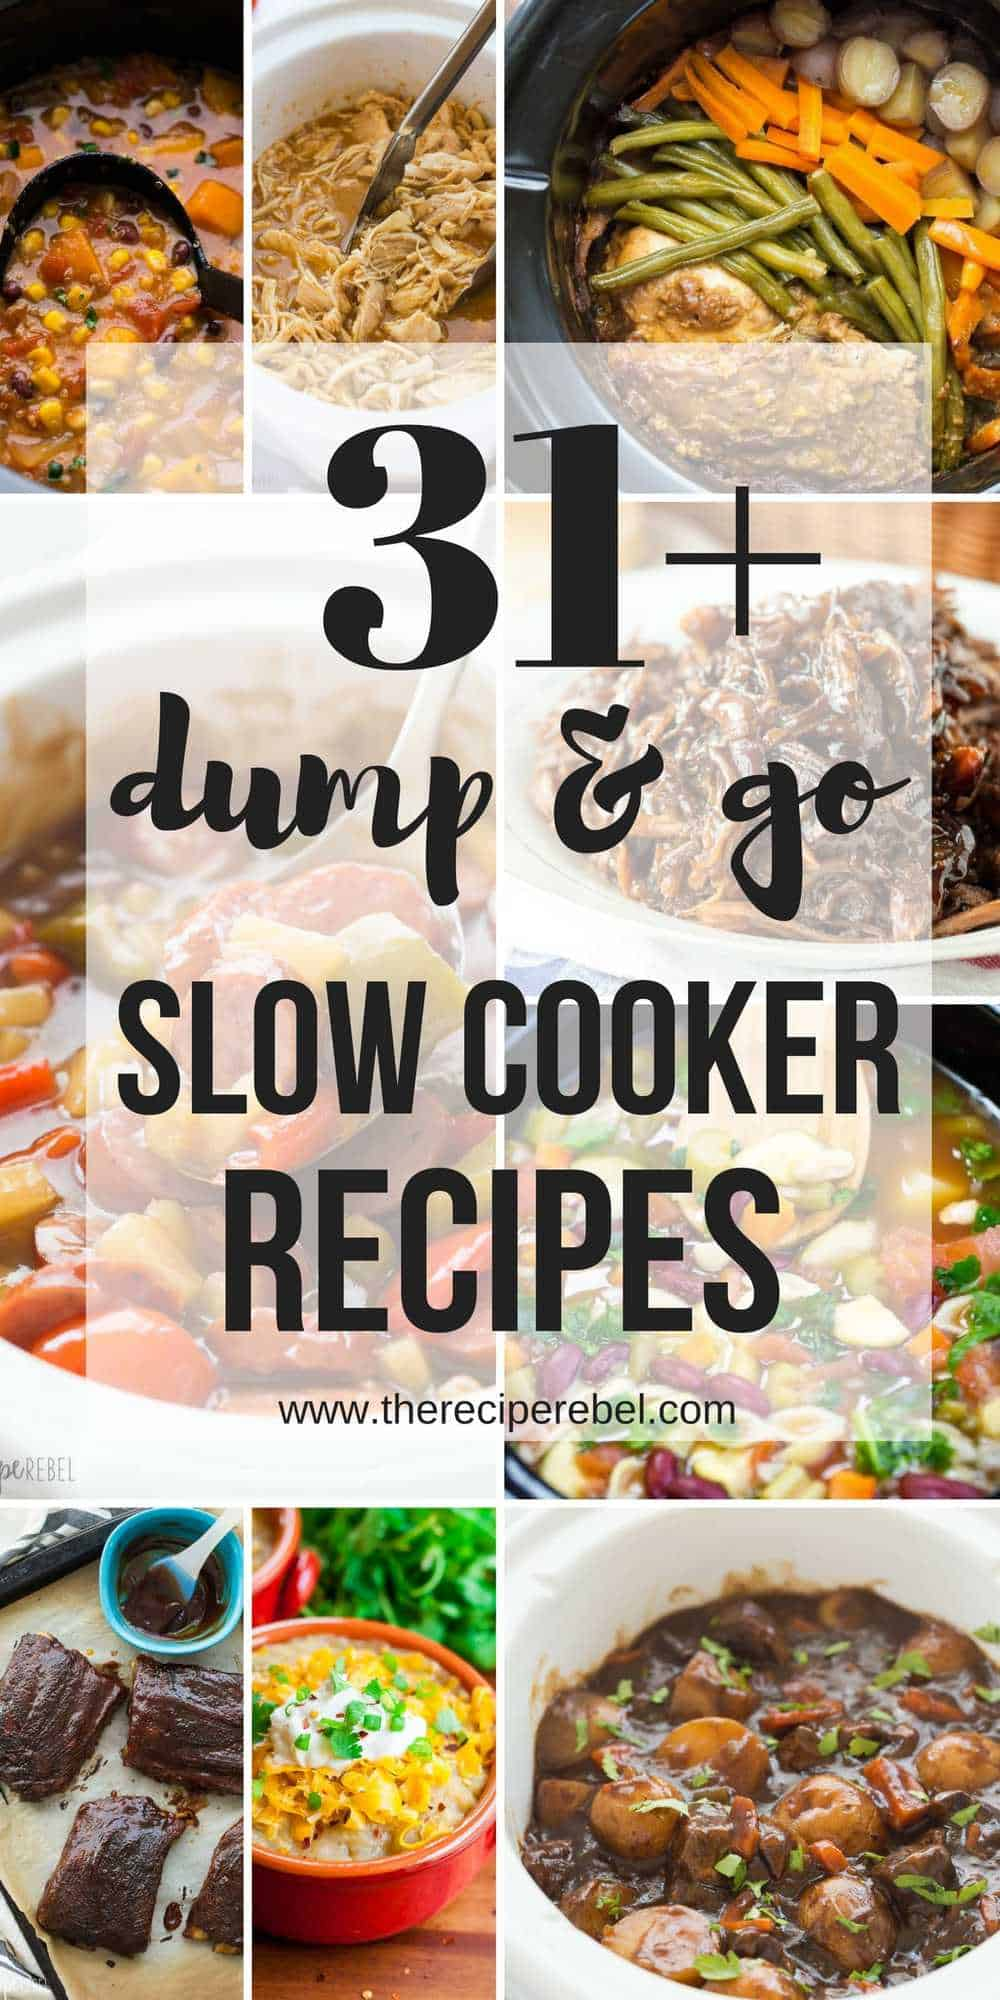 These Dump and Go Slow Cooker Recipes require no cooking or browning beforehand -- simply throw it in and walk away! Easy crock pot dump meals for busy weeknights and back to school! Chicken, beef, pork, or vegetarian -- there's something for everyone!